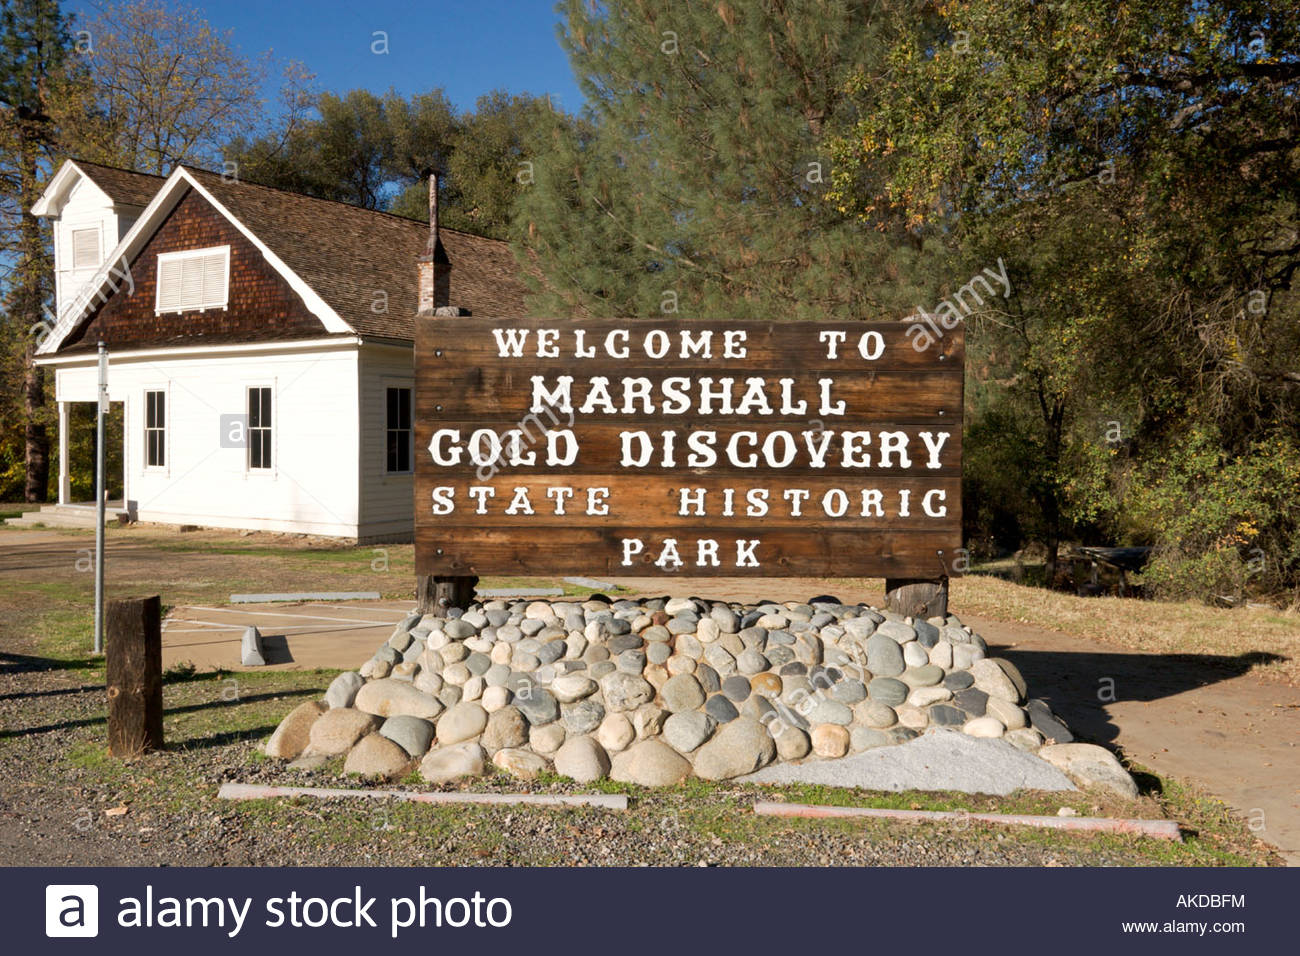 gold discovery stock photos gold discovery stock images alamy